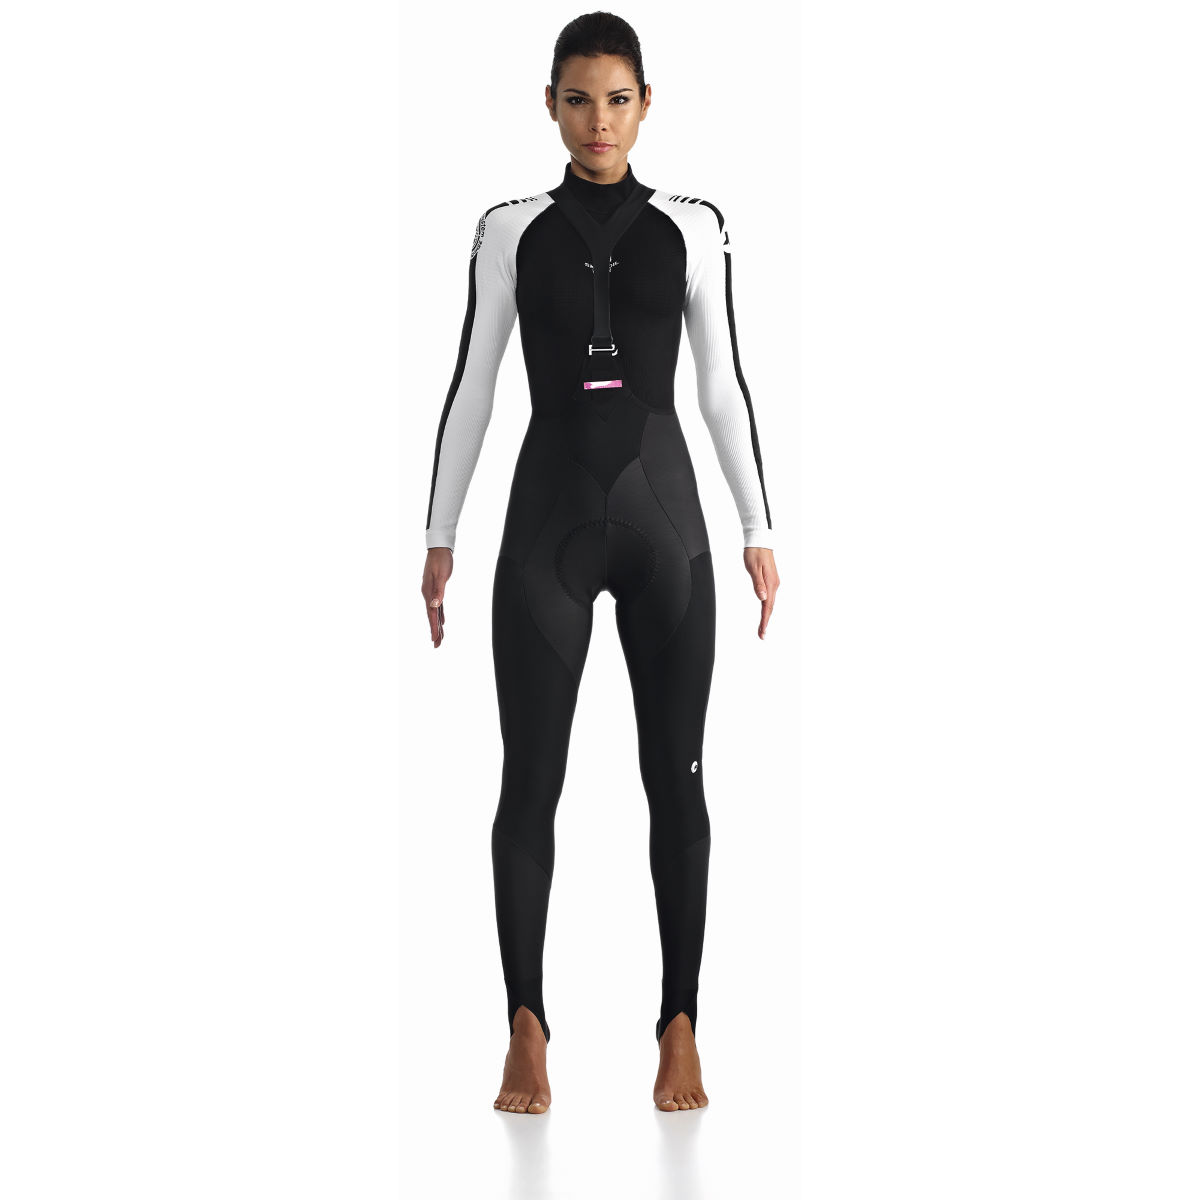 Assos Womens LL.pompaDour_s5 Bib Tights   Cycling Tights